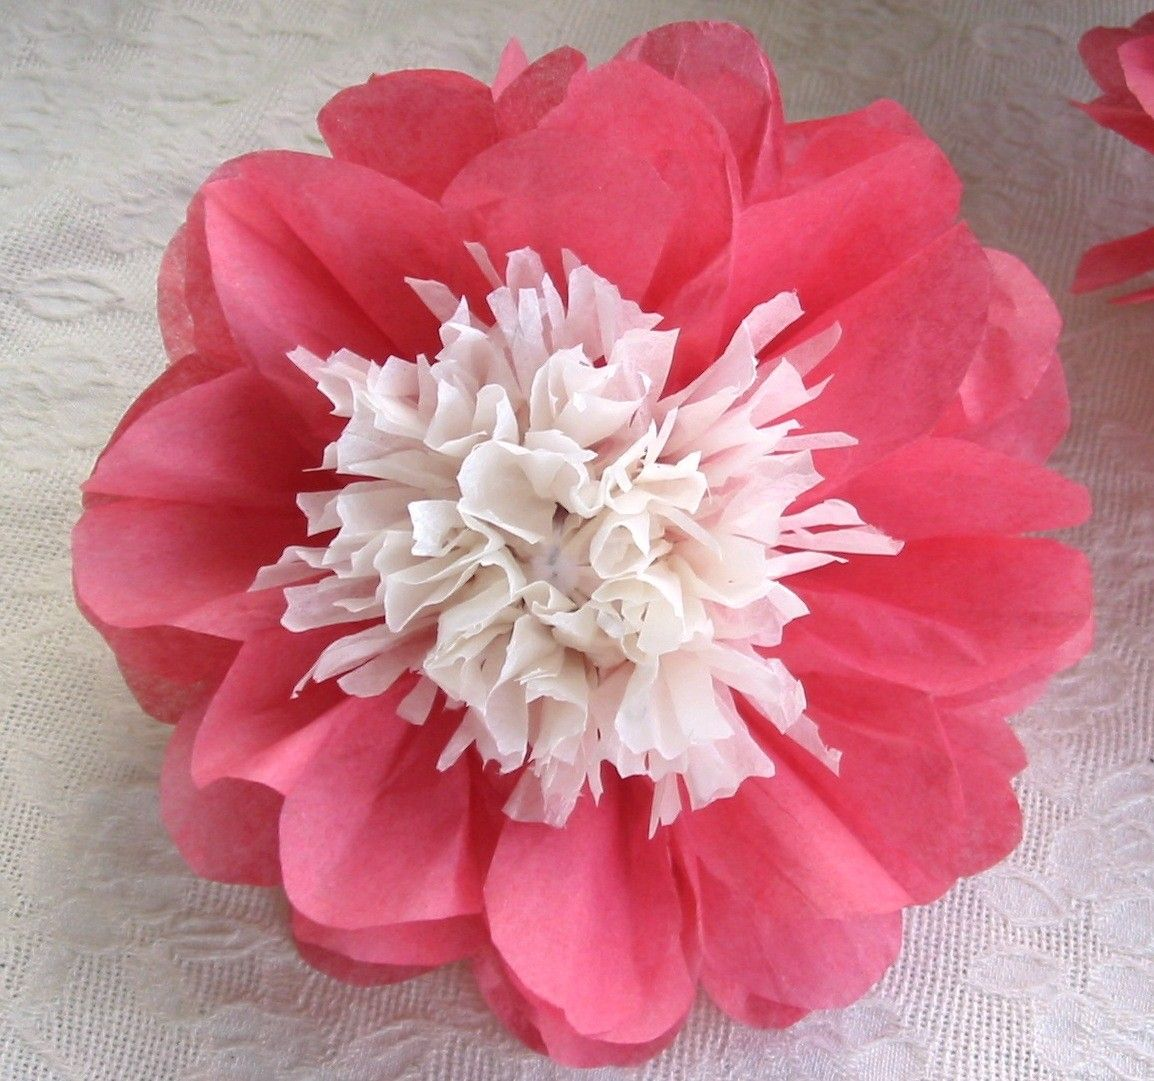 12 diy tissue paper flowers japanese anemone peony paper flowers 12 diy tissue paper flowers japanese anemone peony paper flowers chenille stems custom colors 2160 via etsy mightylinksfo